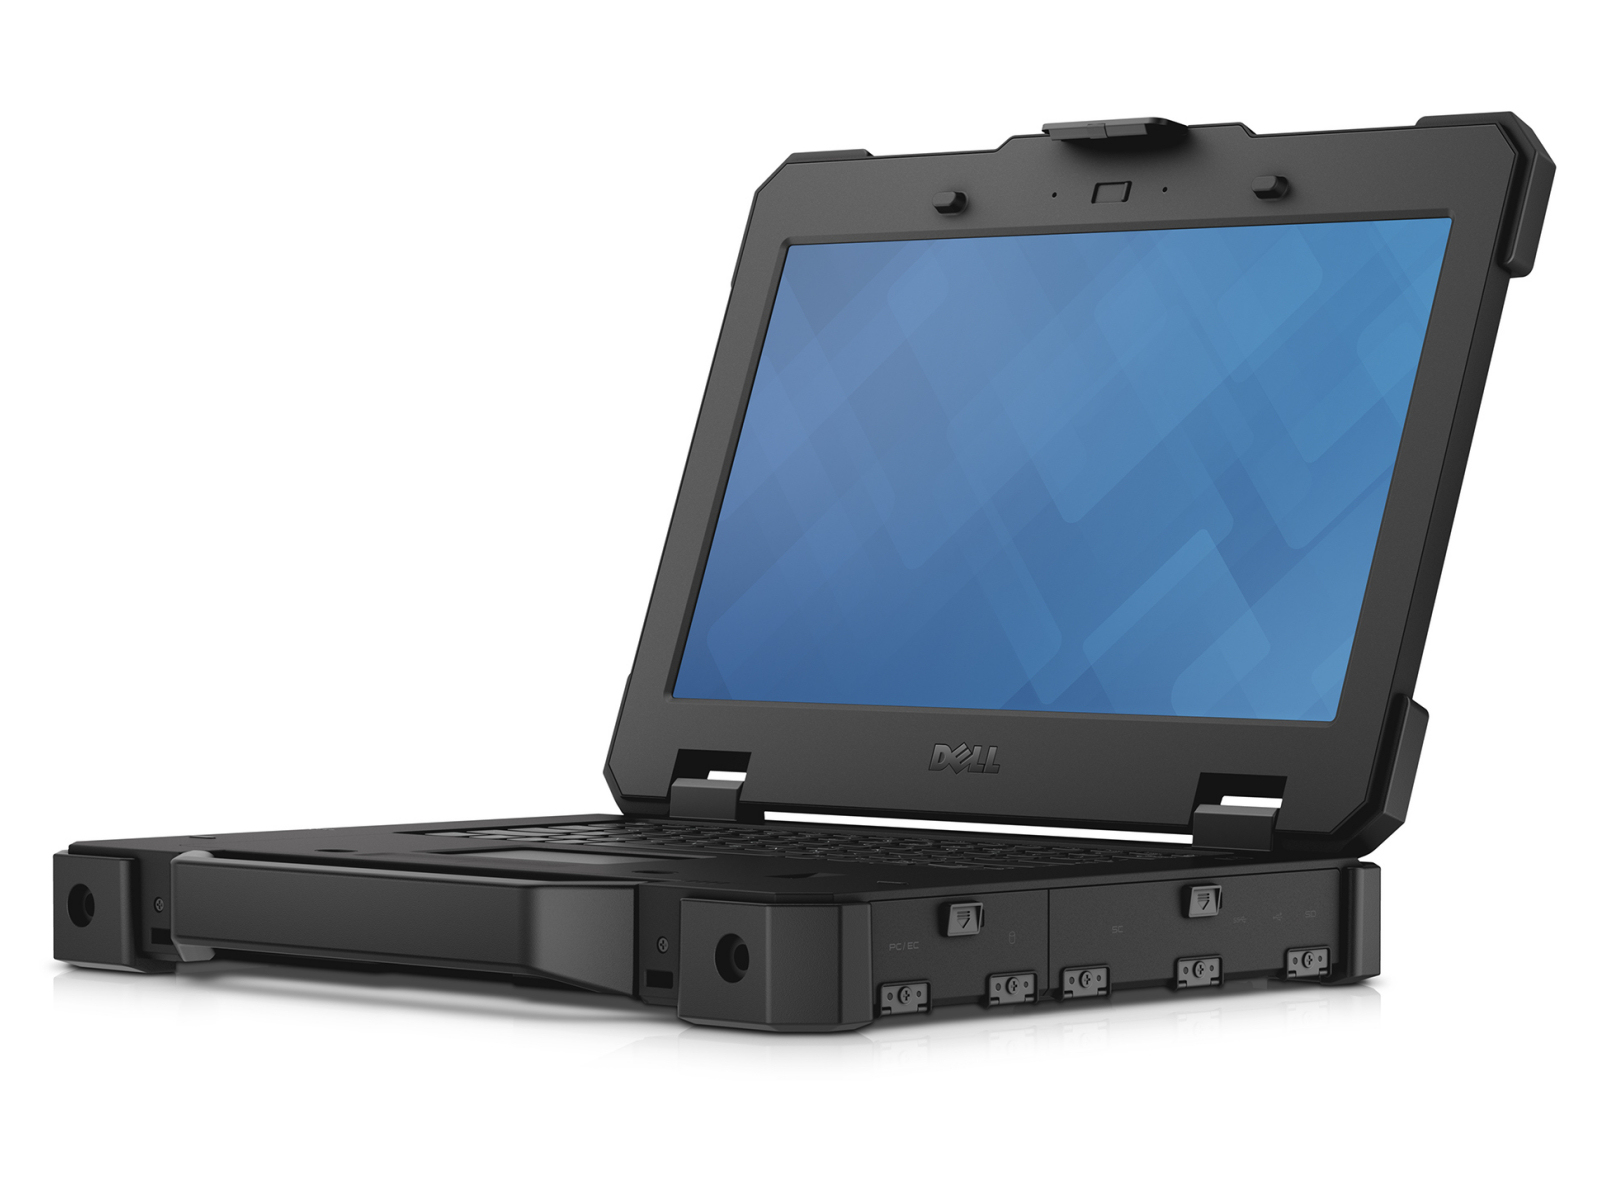 Dell Latitude 14 7414 Rugged Extreme 6200u Hd Laptop